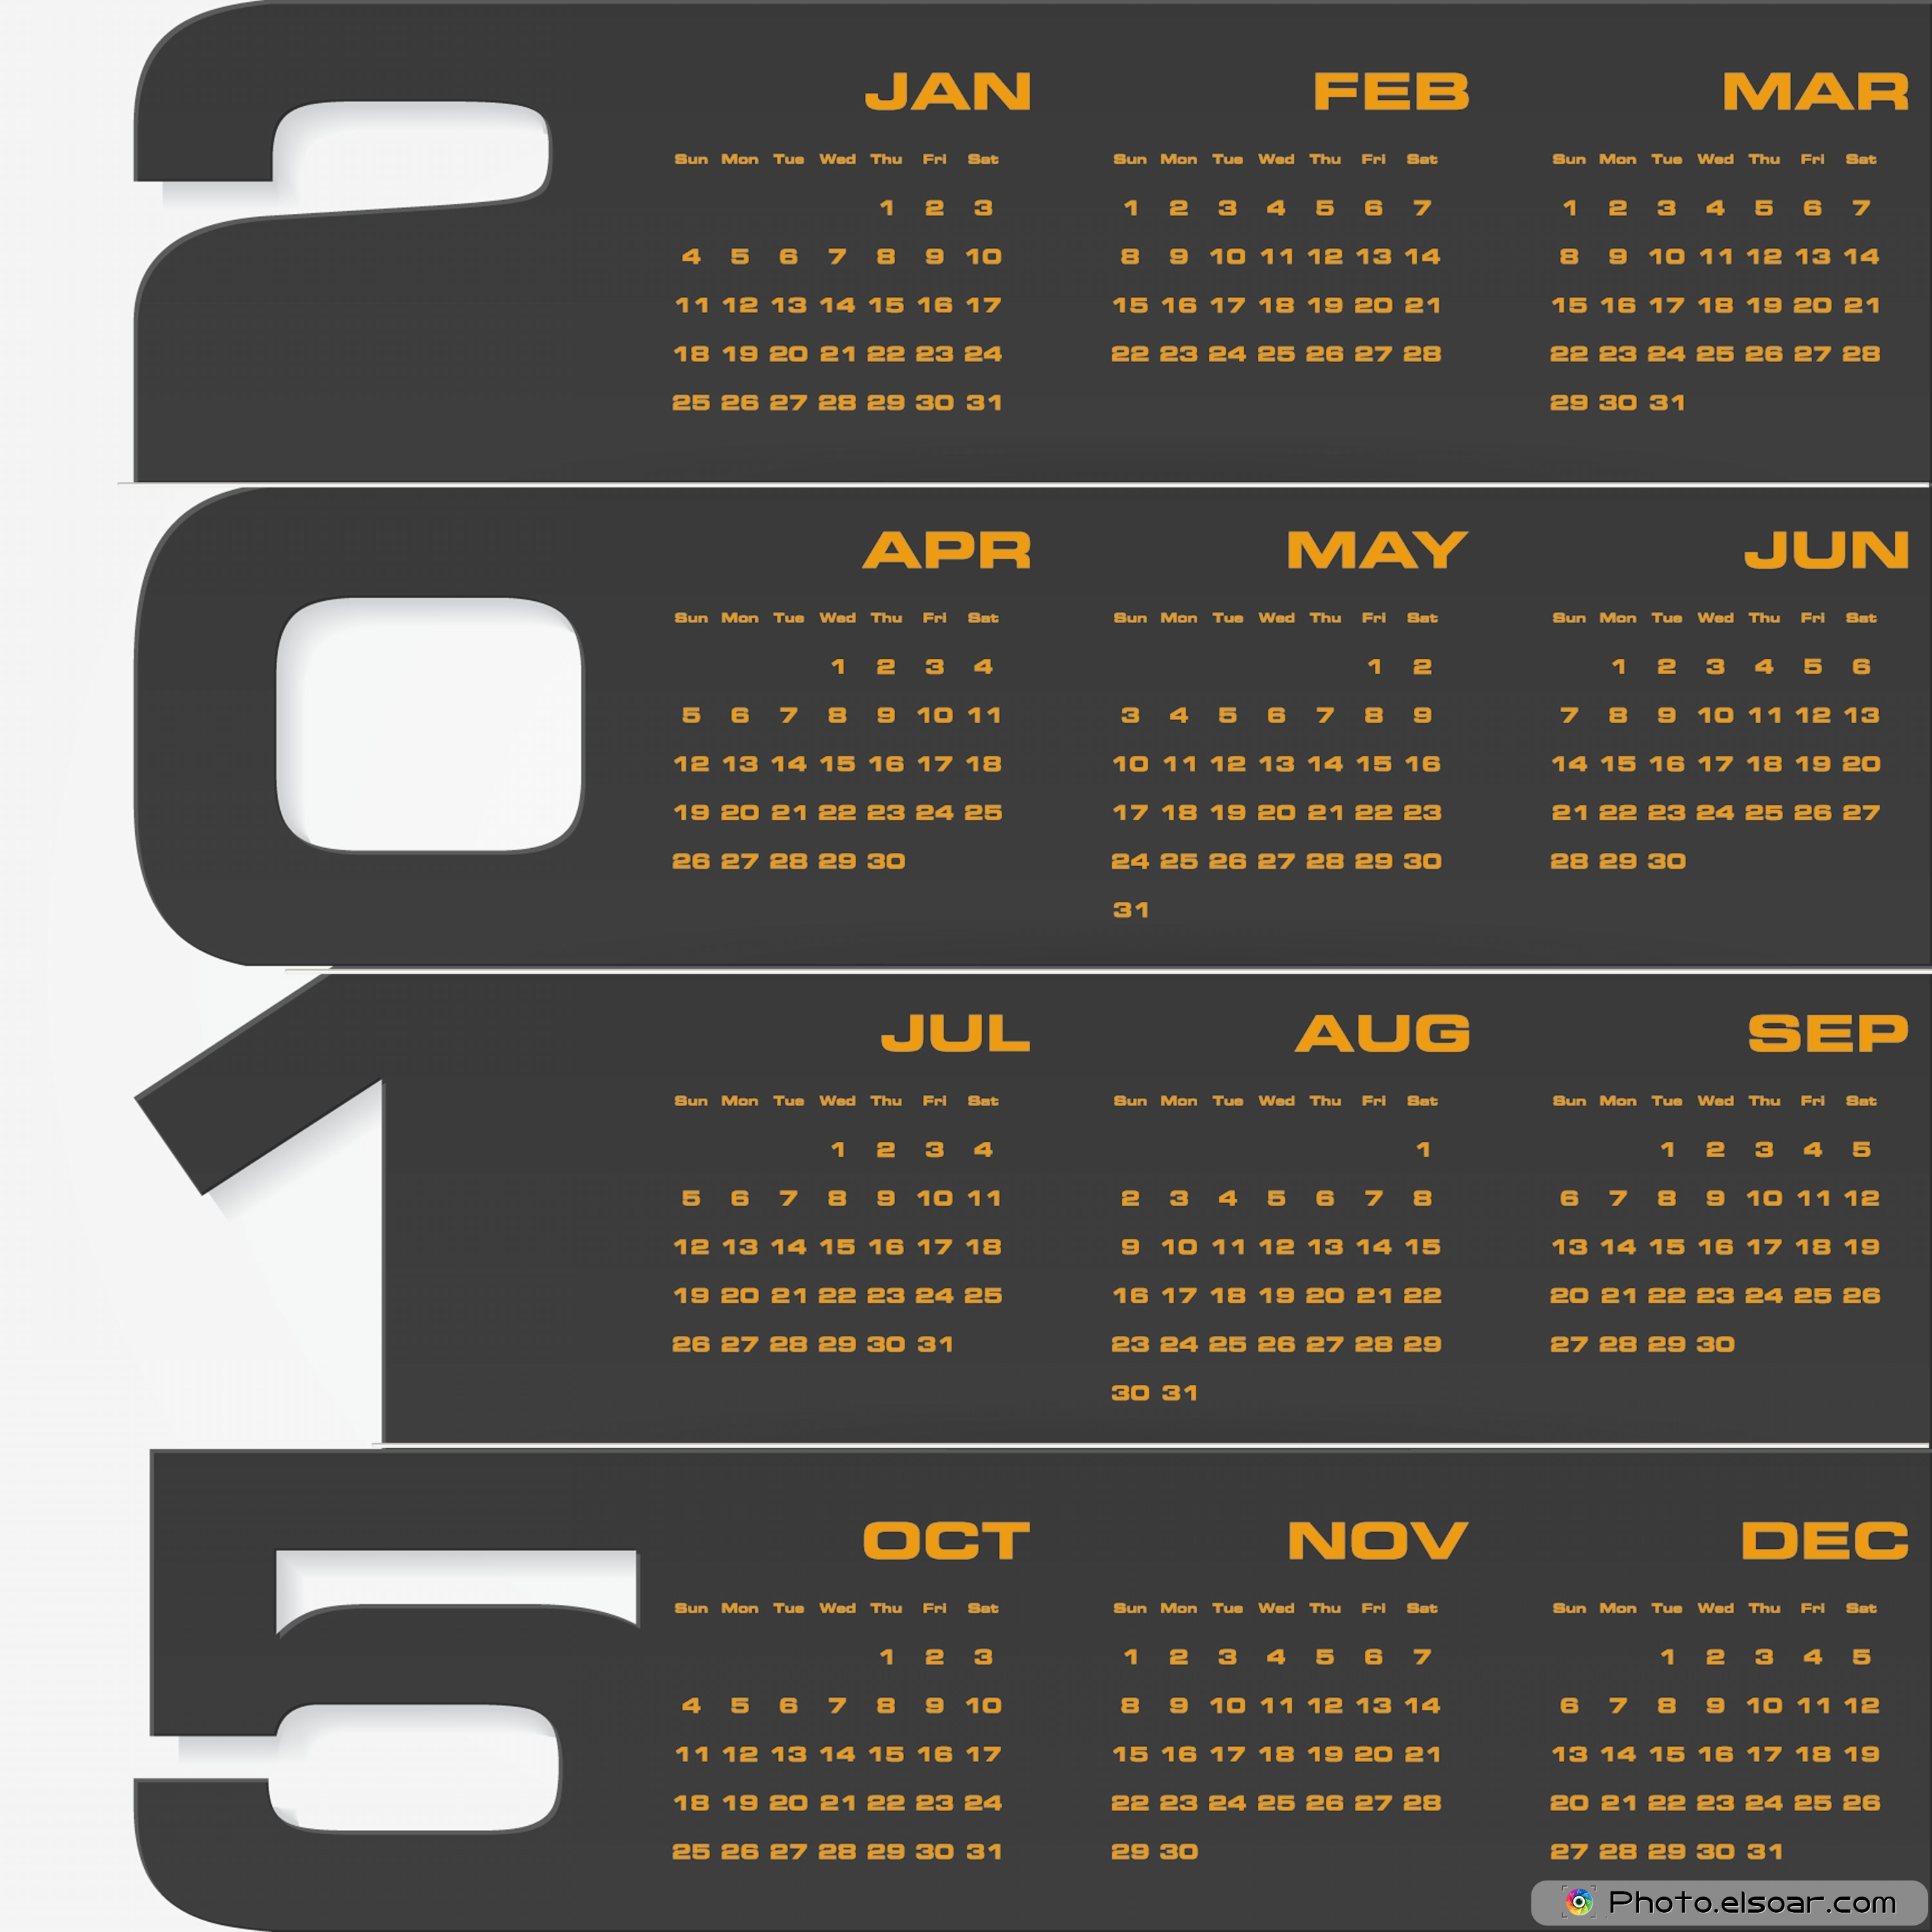 Business Calendars For 2015 Awesome JPEGs Templates Elsoar 3000x3000